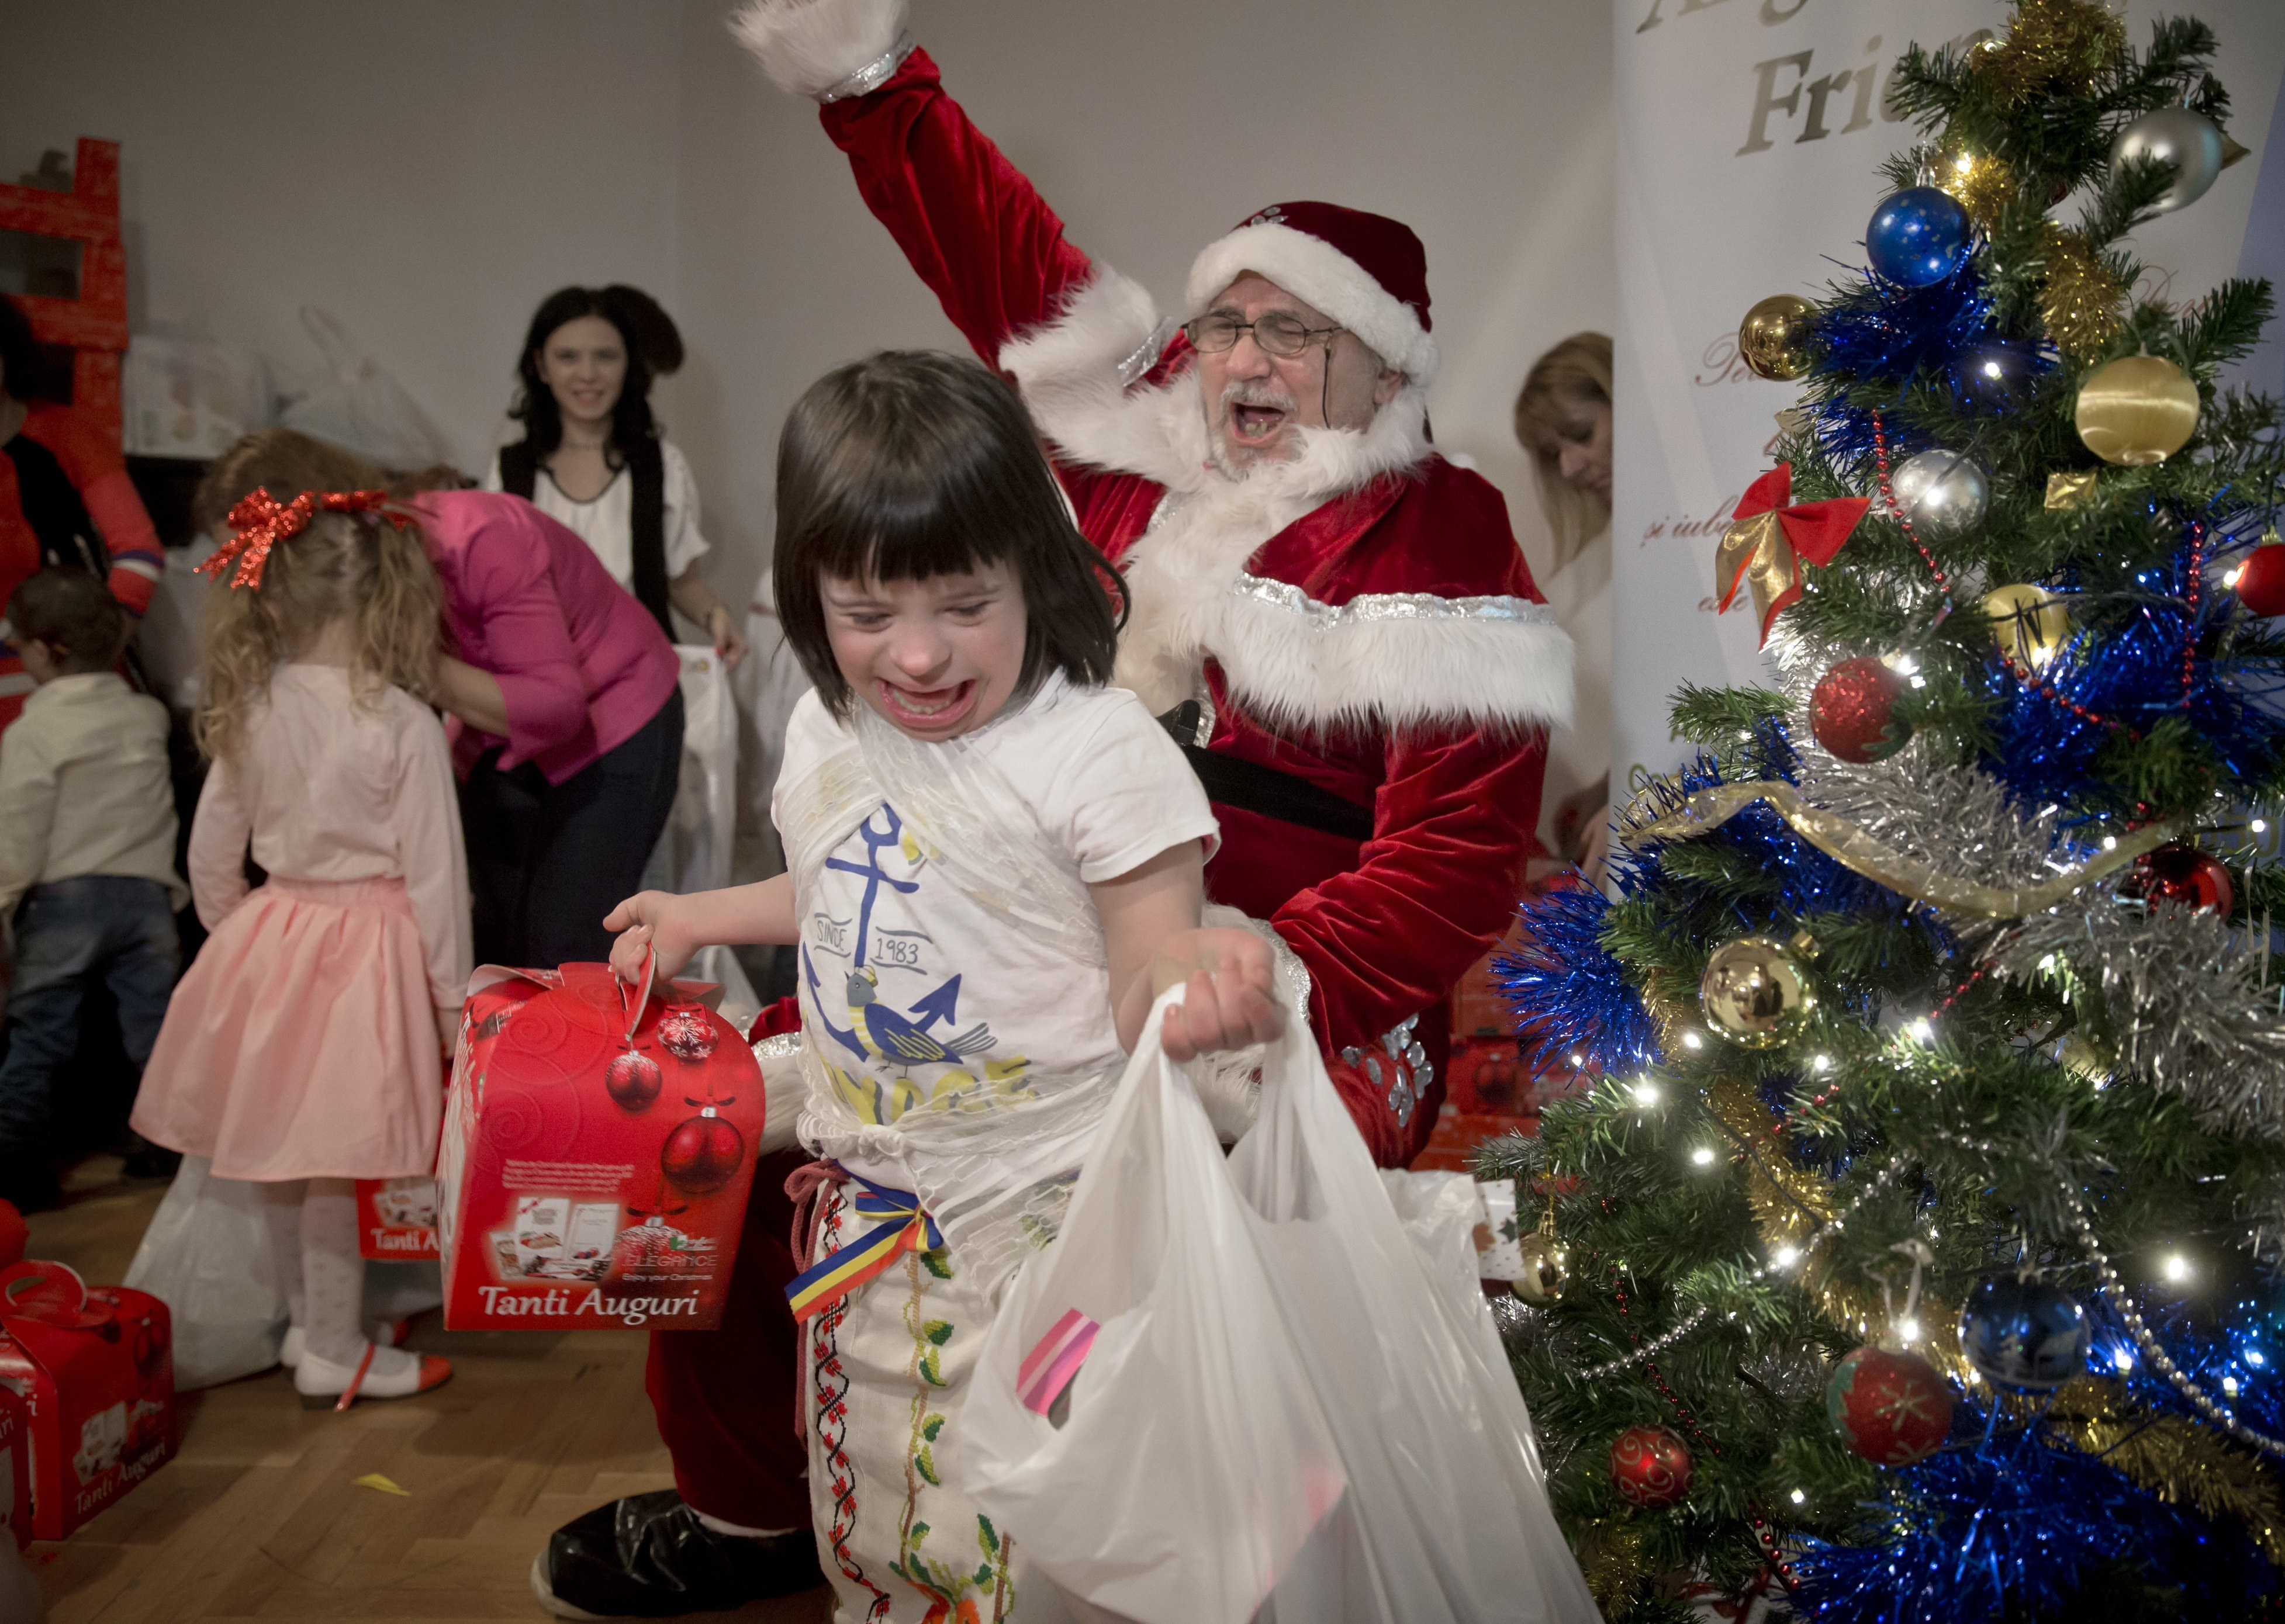 PHOTOS: In Romania, Santa Steps In To Help Fight Stigma Of Down Syndrome